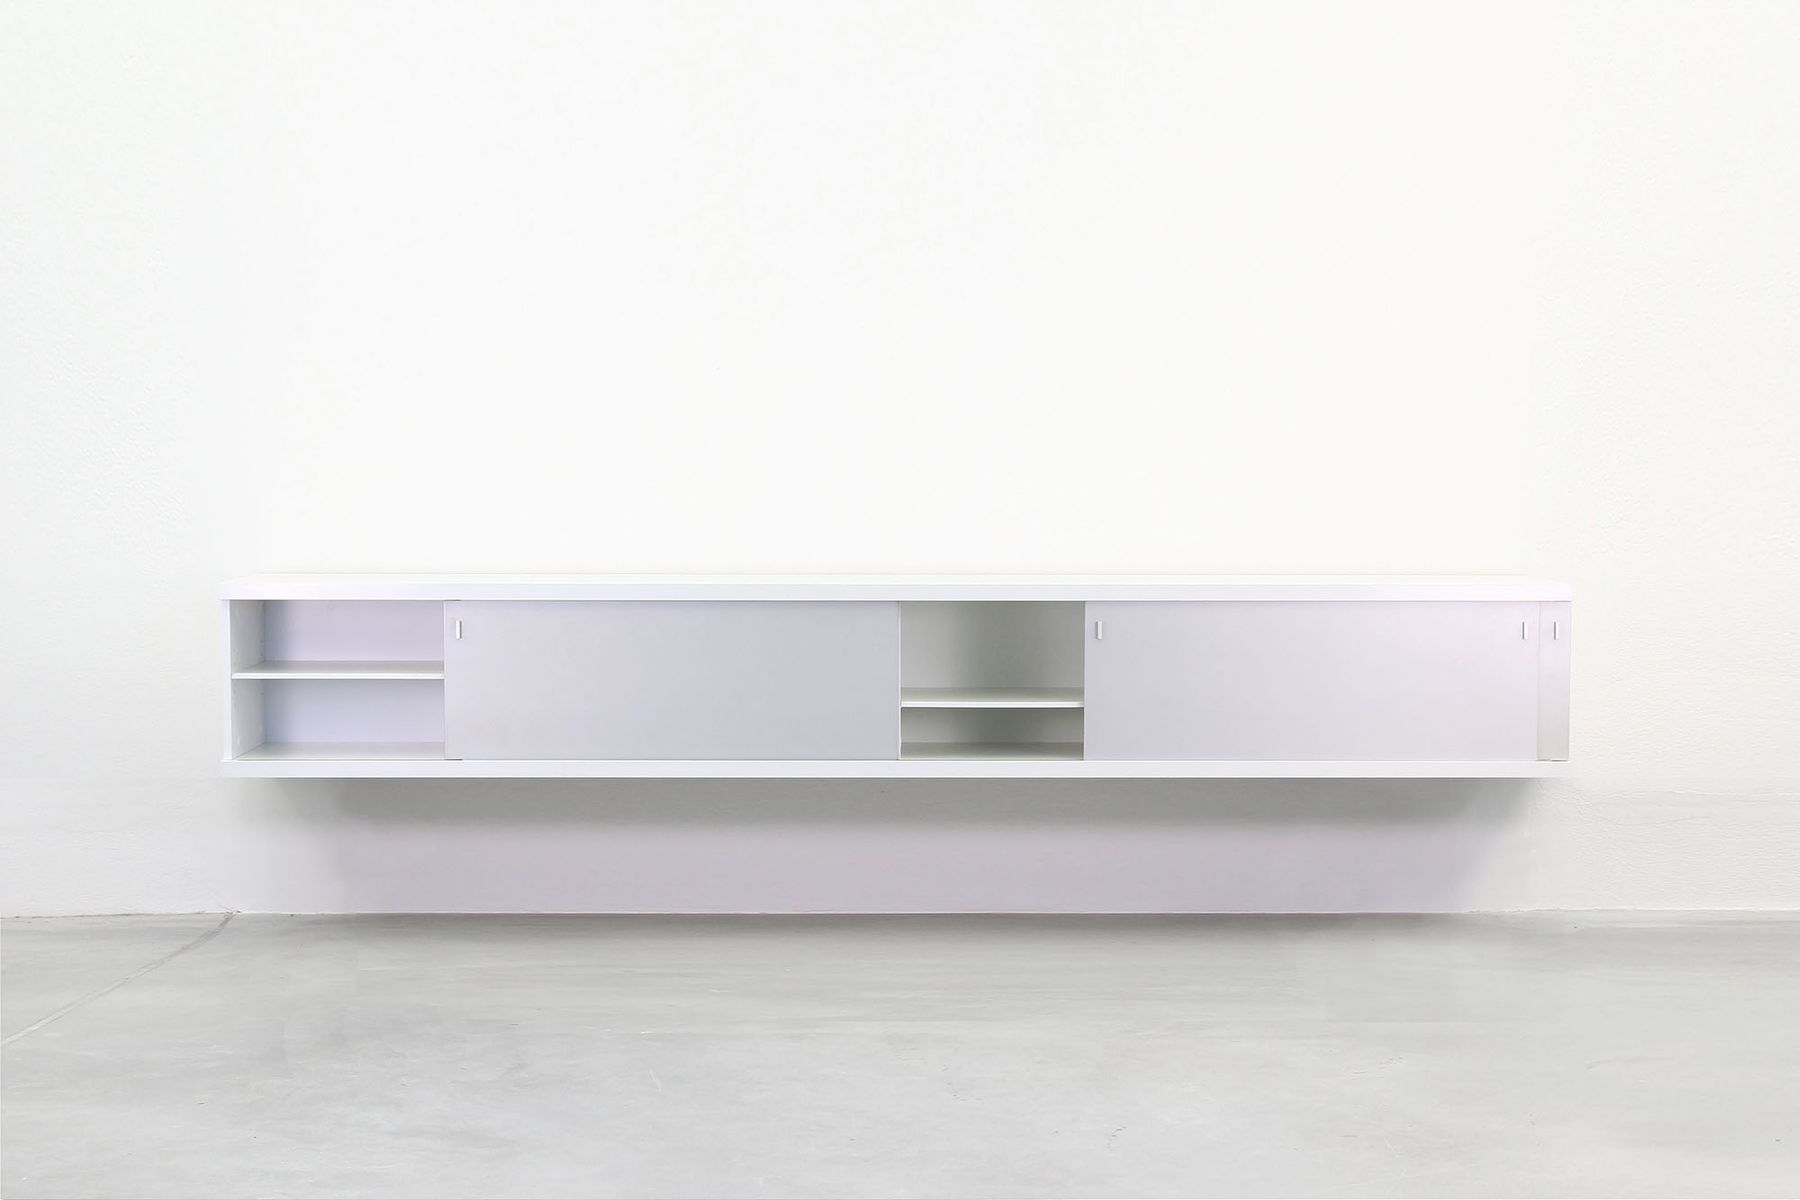 h ngendes sideboard von horst br ning f r behr 1967 bei pamono kaufen. Black Bedroom Furniture Sets. Home Design Ideas